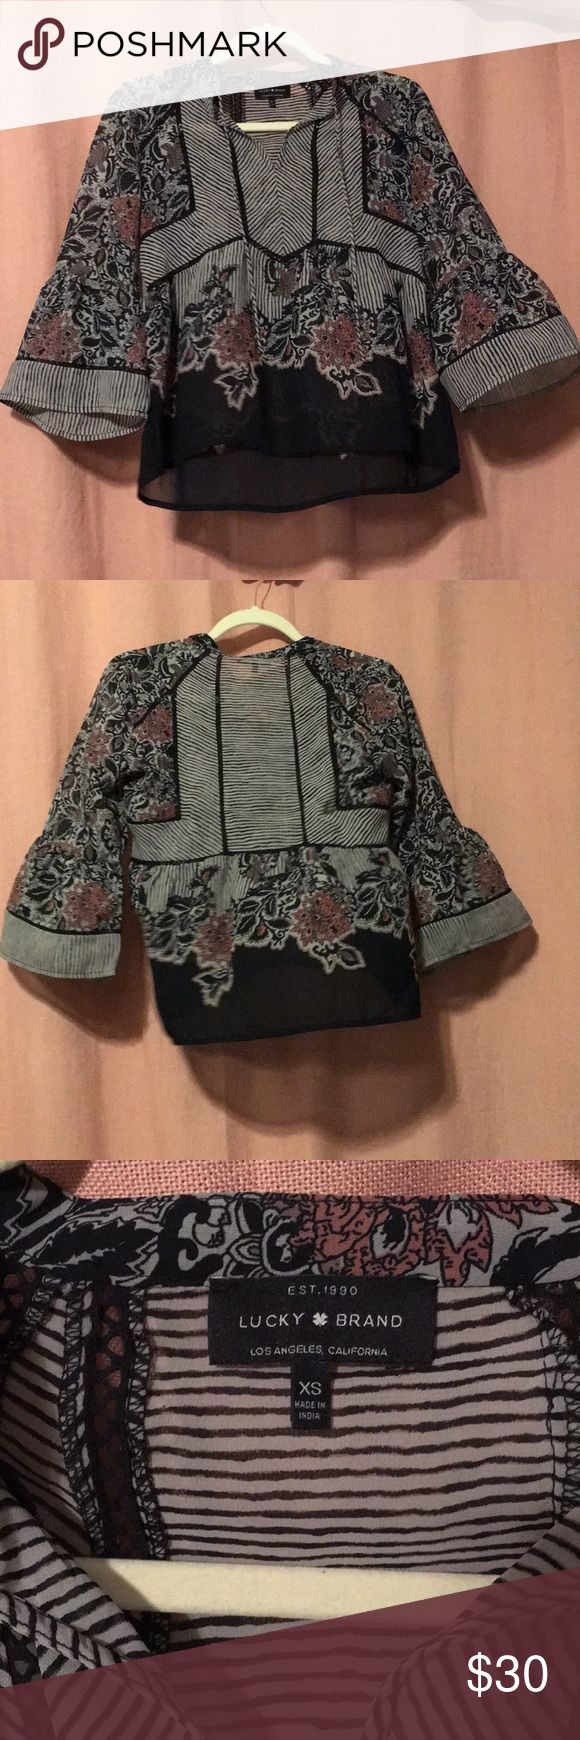 XS Lucky Brand mixed print top Barley worn XS Lucky Brand blouse. A beautiful sheer number that looks amazing with black skinnies and a good pair of boots or heels! Fits true to size Lucky Brand Tops Blouses